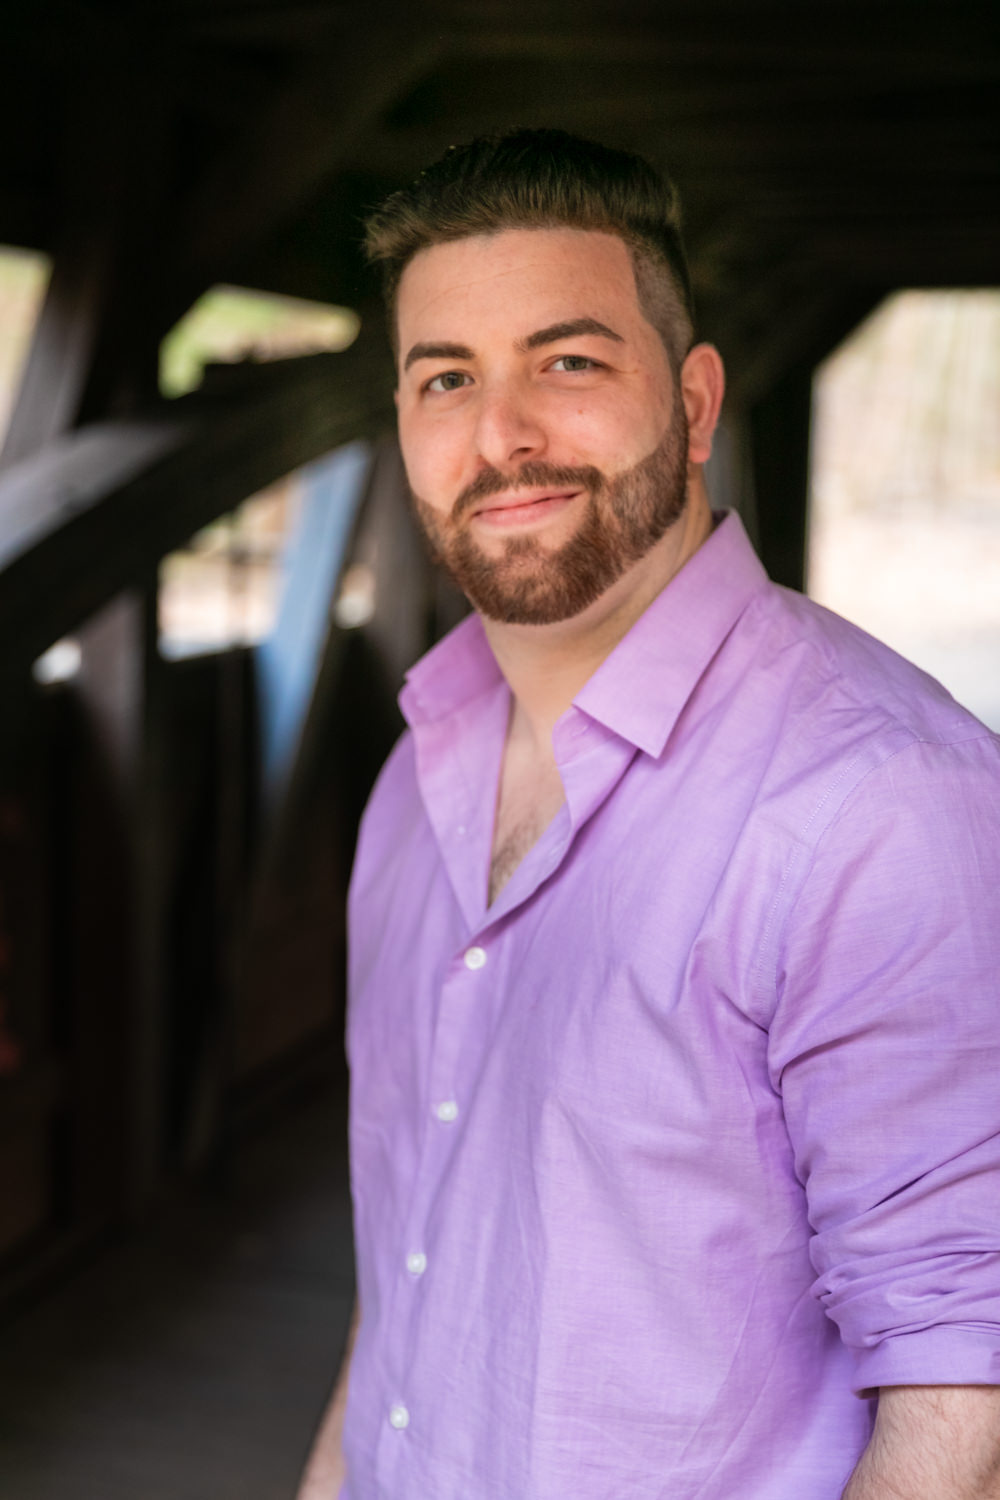 Head shot photography by CT Photo Group